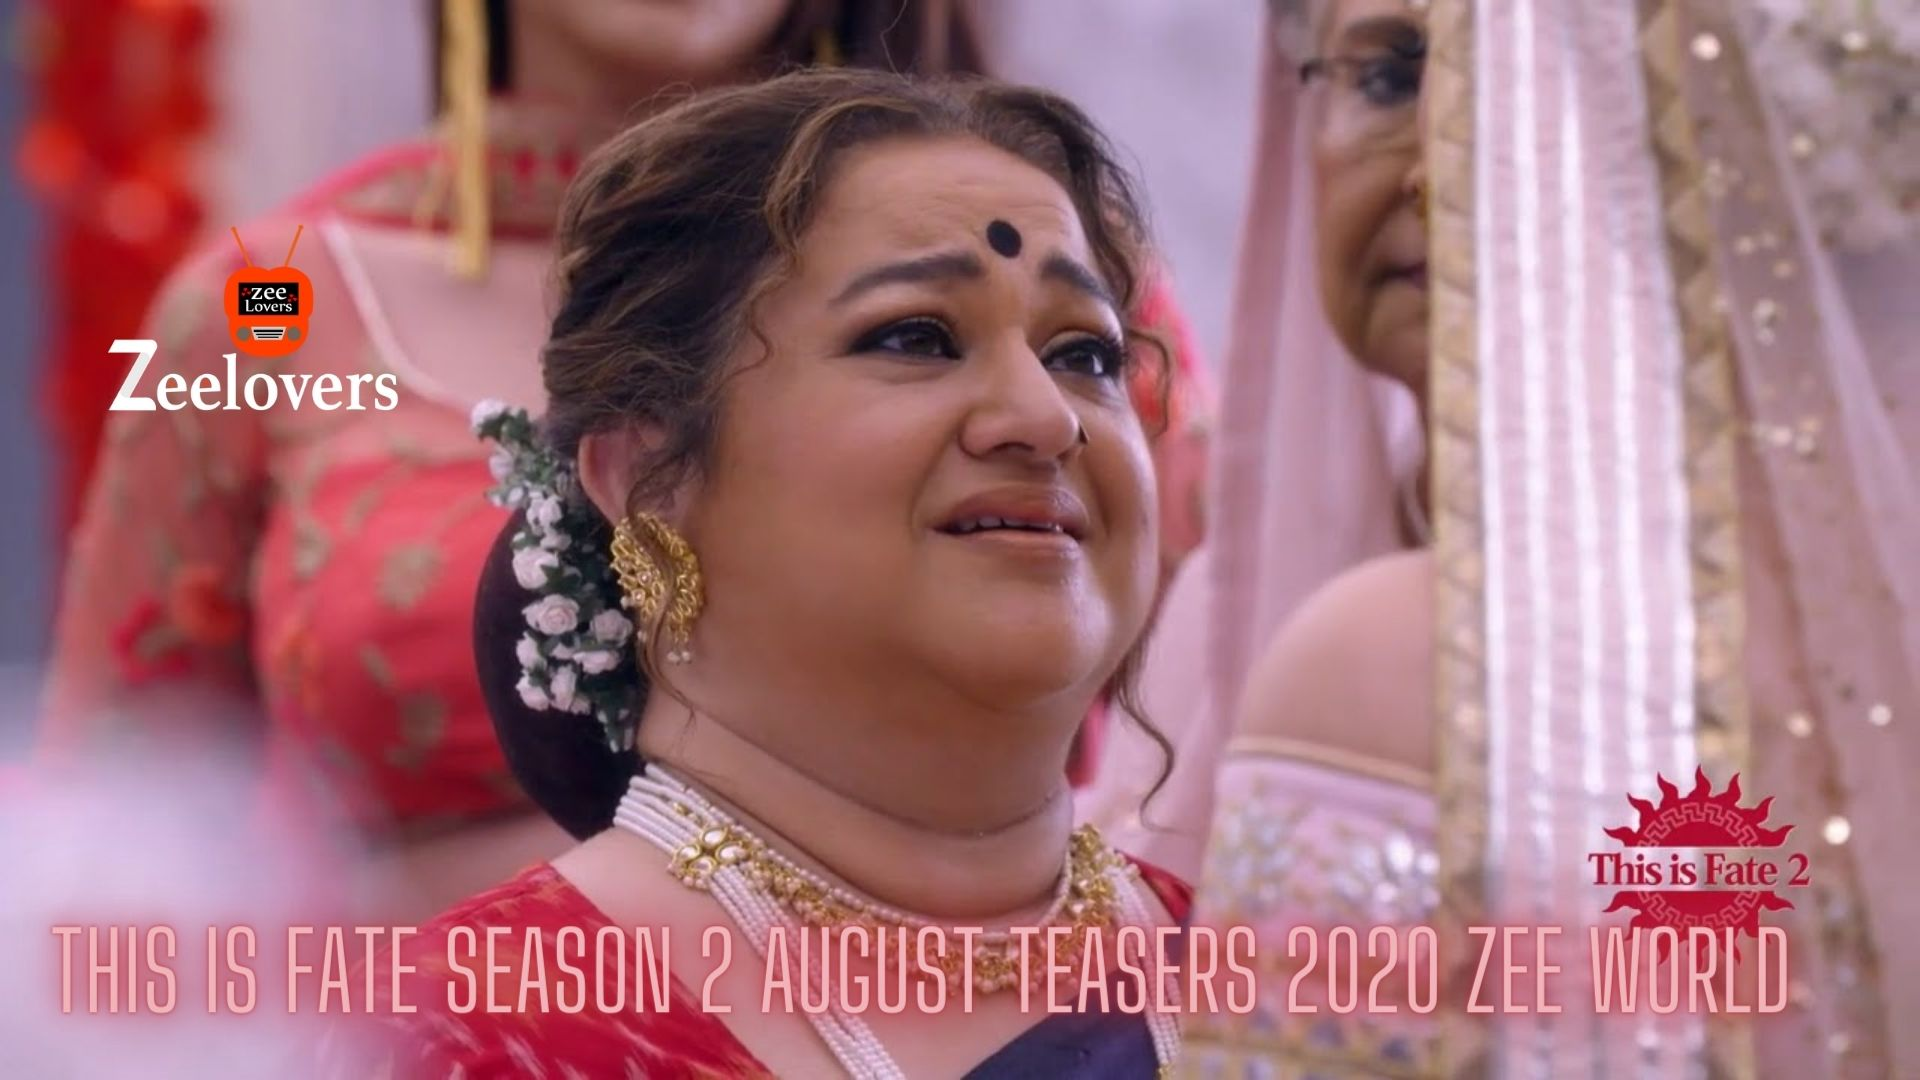 This is Fate Season 2 August Teasers 2020 Zee world